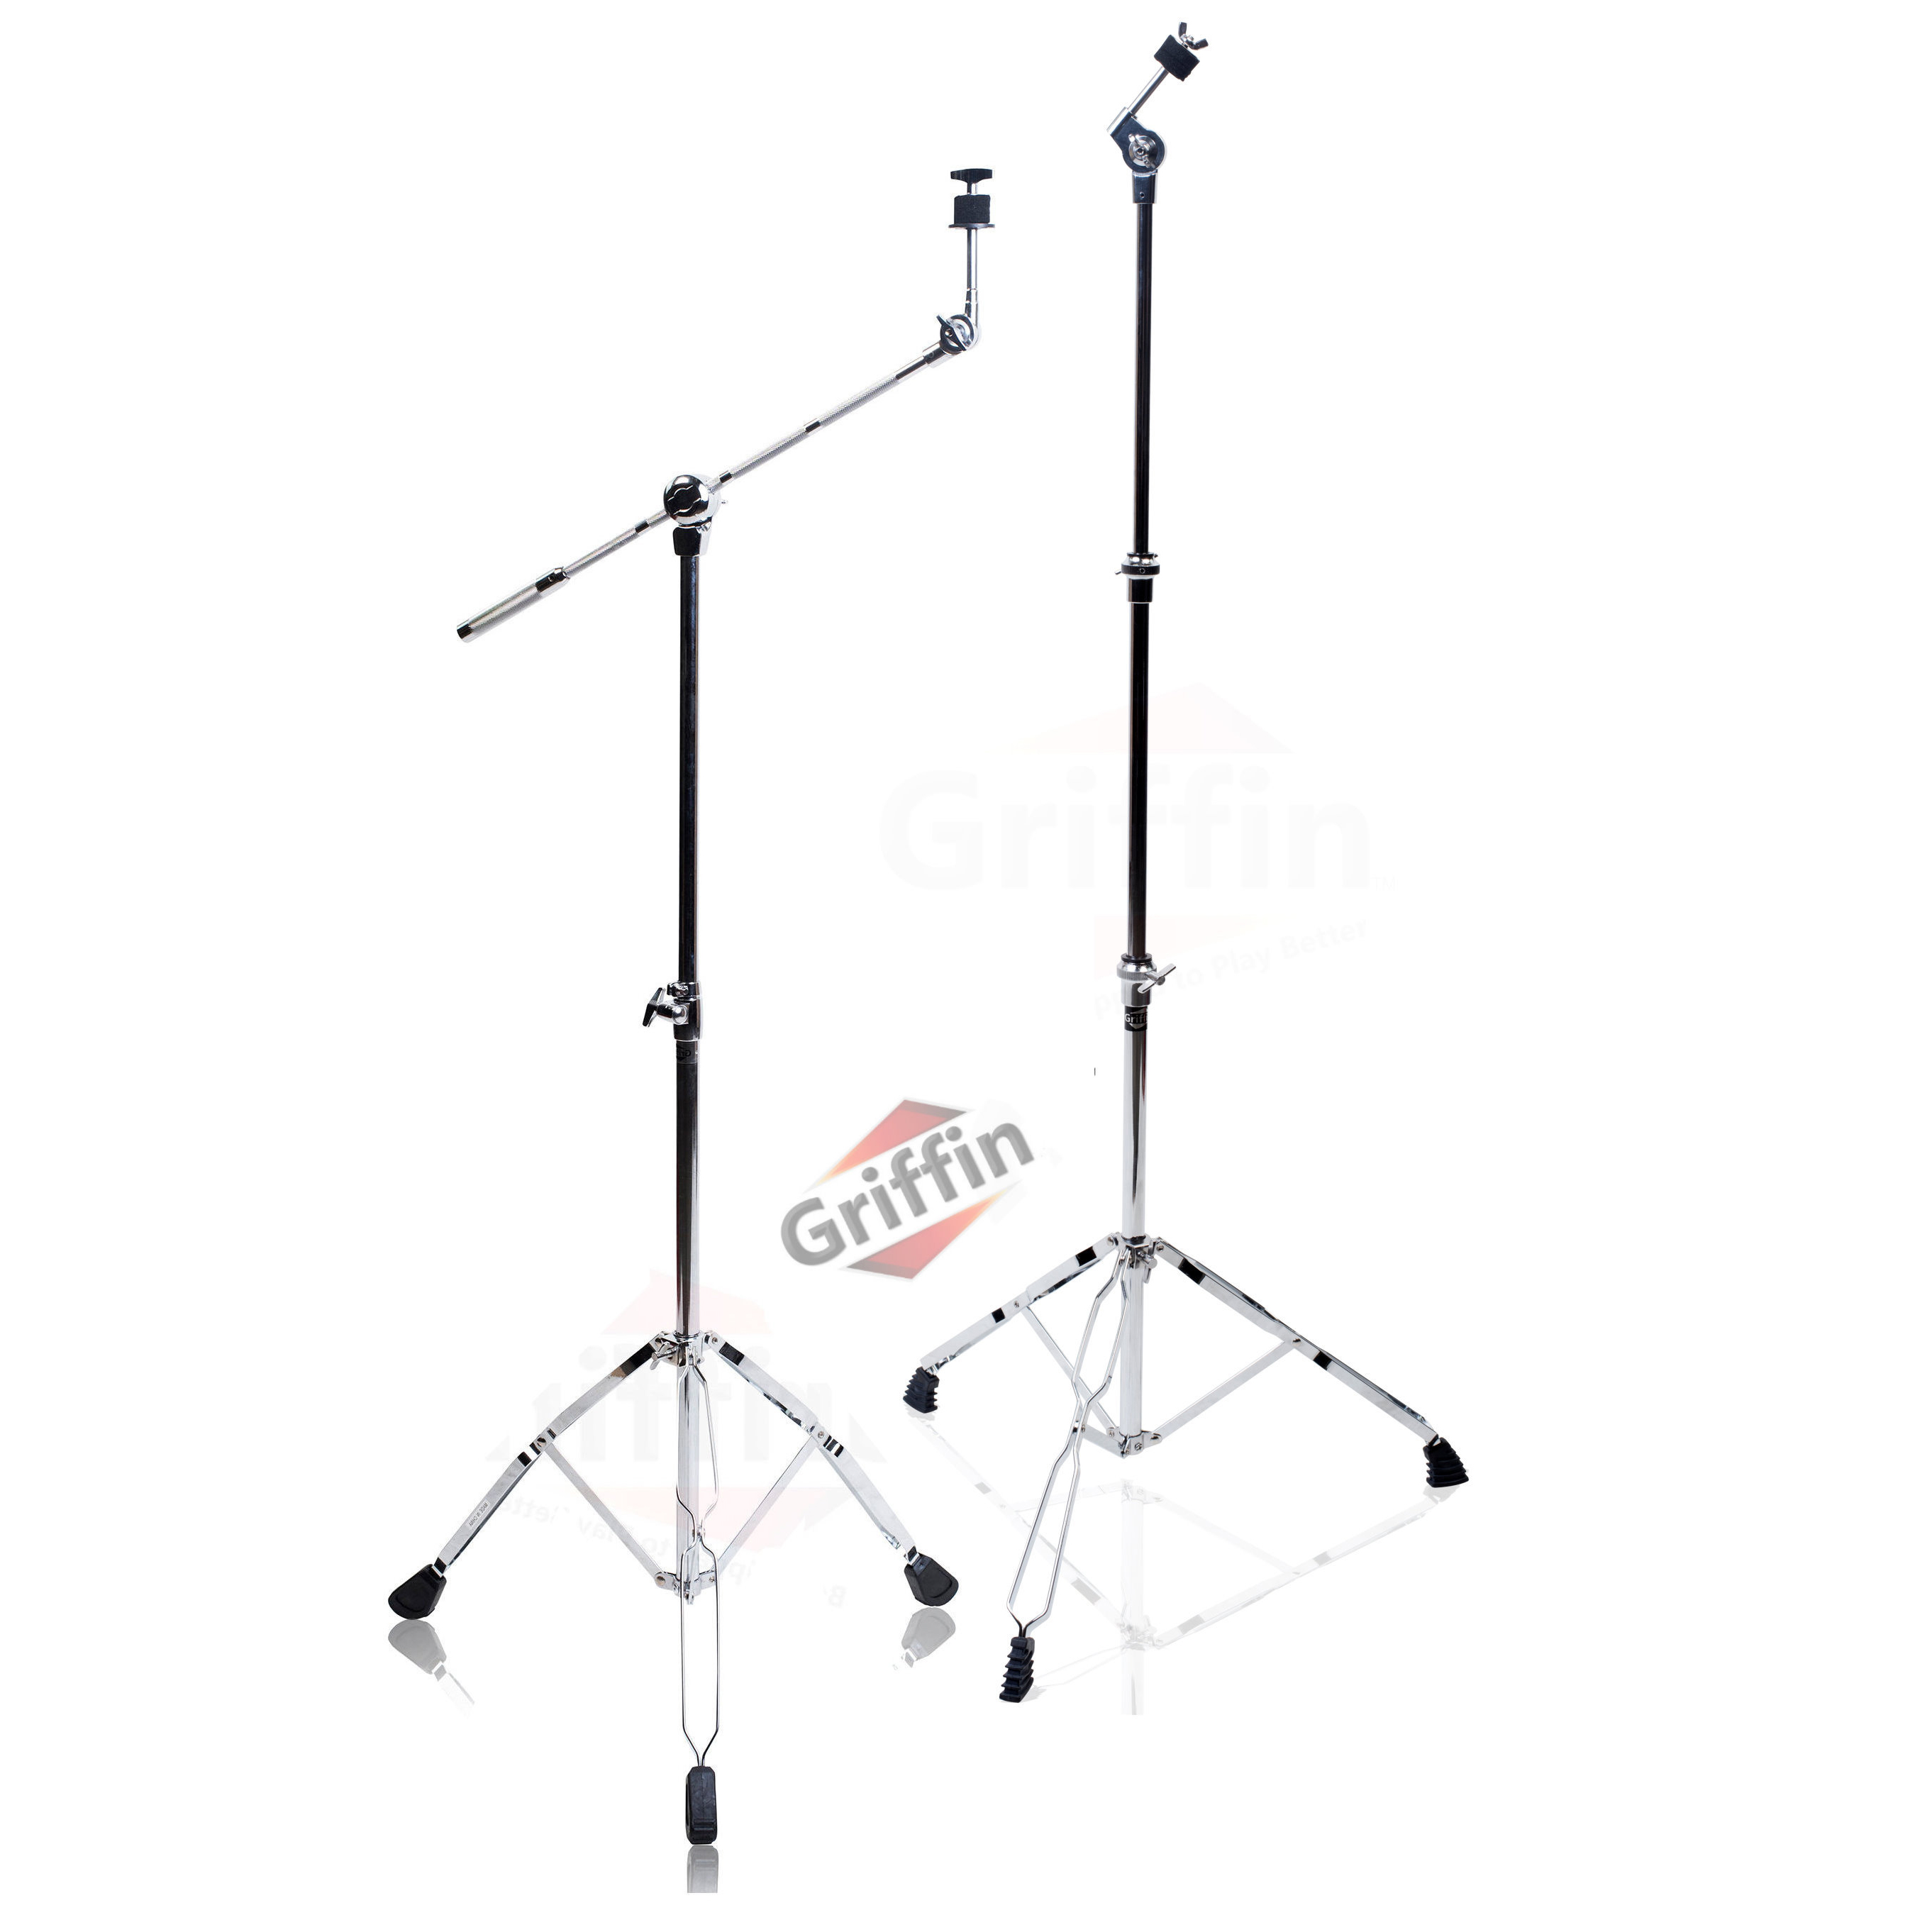 Cymbal Boom Stand & Straight Cymbal Stand Combo (Pack of 2) by Griffin | Percussion Drum Hardware Set for Mounting & Holding Crash, Ride, Splash Cymbals | Arm Counterweight Adapter Kit | Double Braced Legs